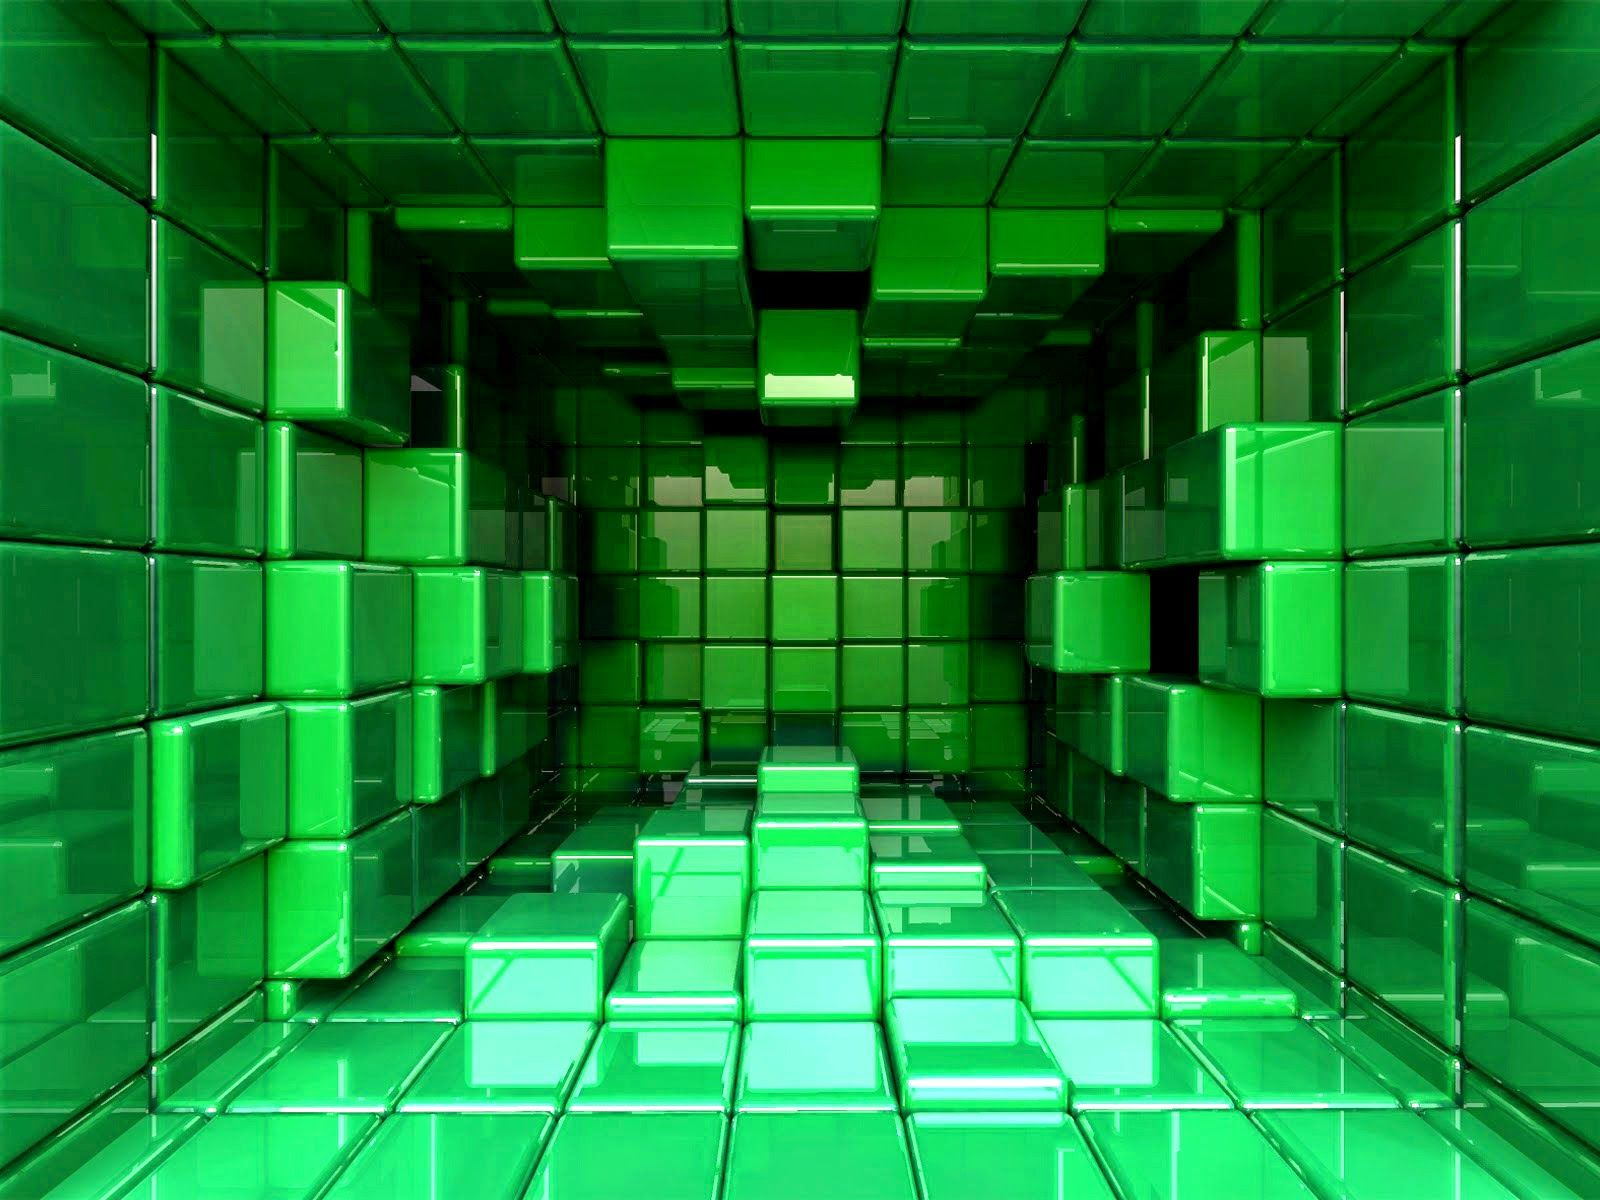 3d wallpapers desktop backgrounds green cubes 3d, 4k wallpaper